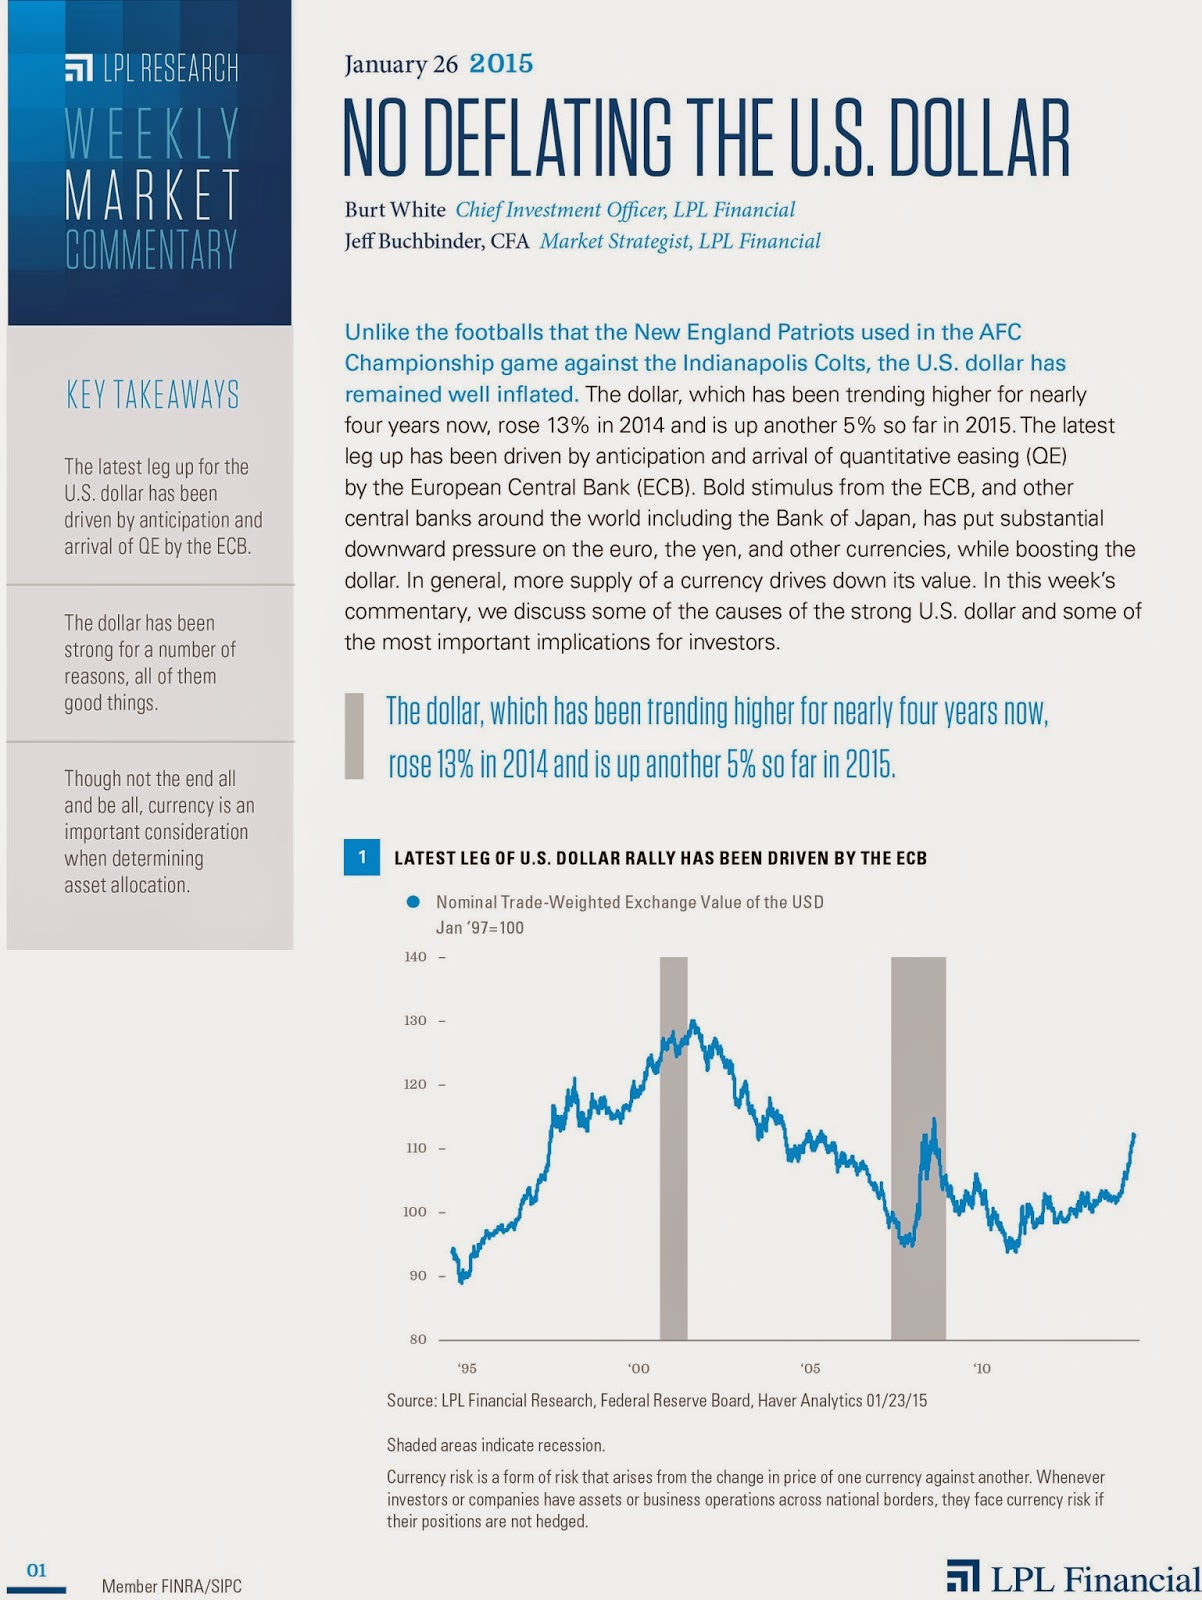 January 26, 2015- LPL Financial Weekly Market Commentary from Legacy Wealth Planning